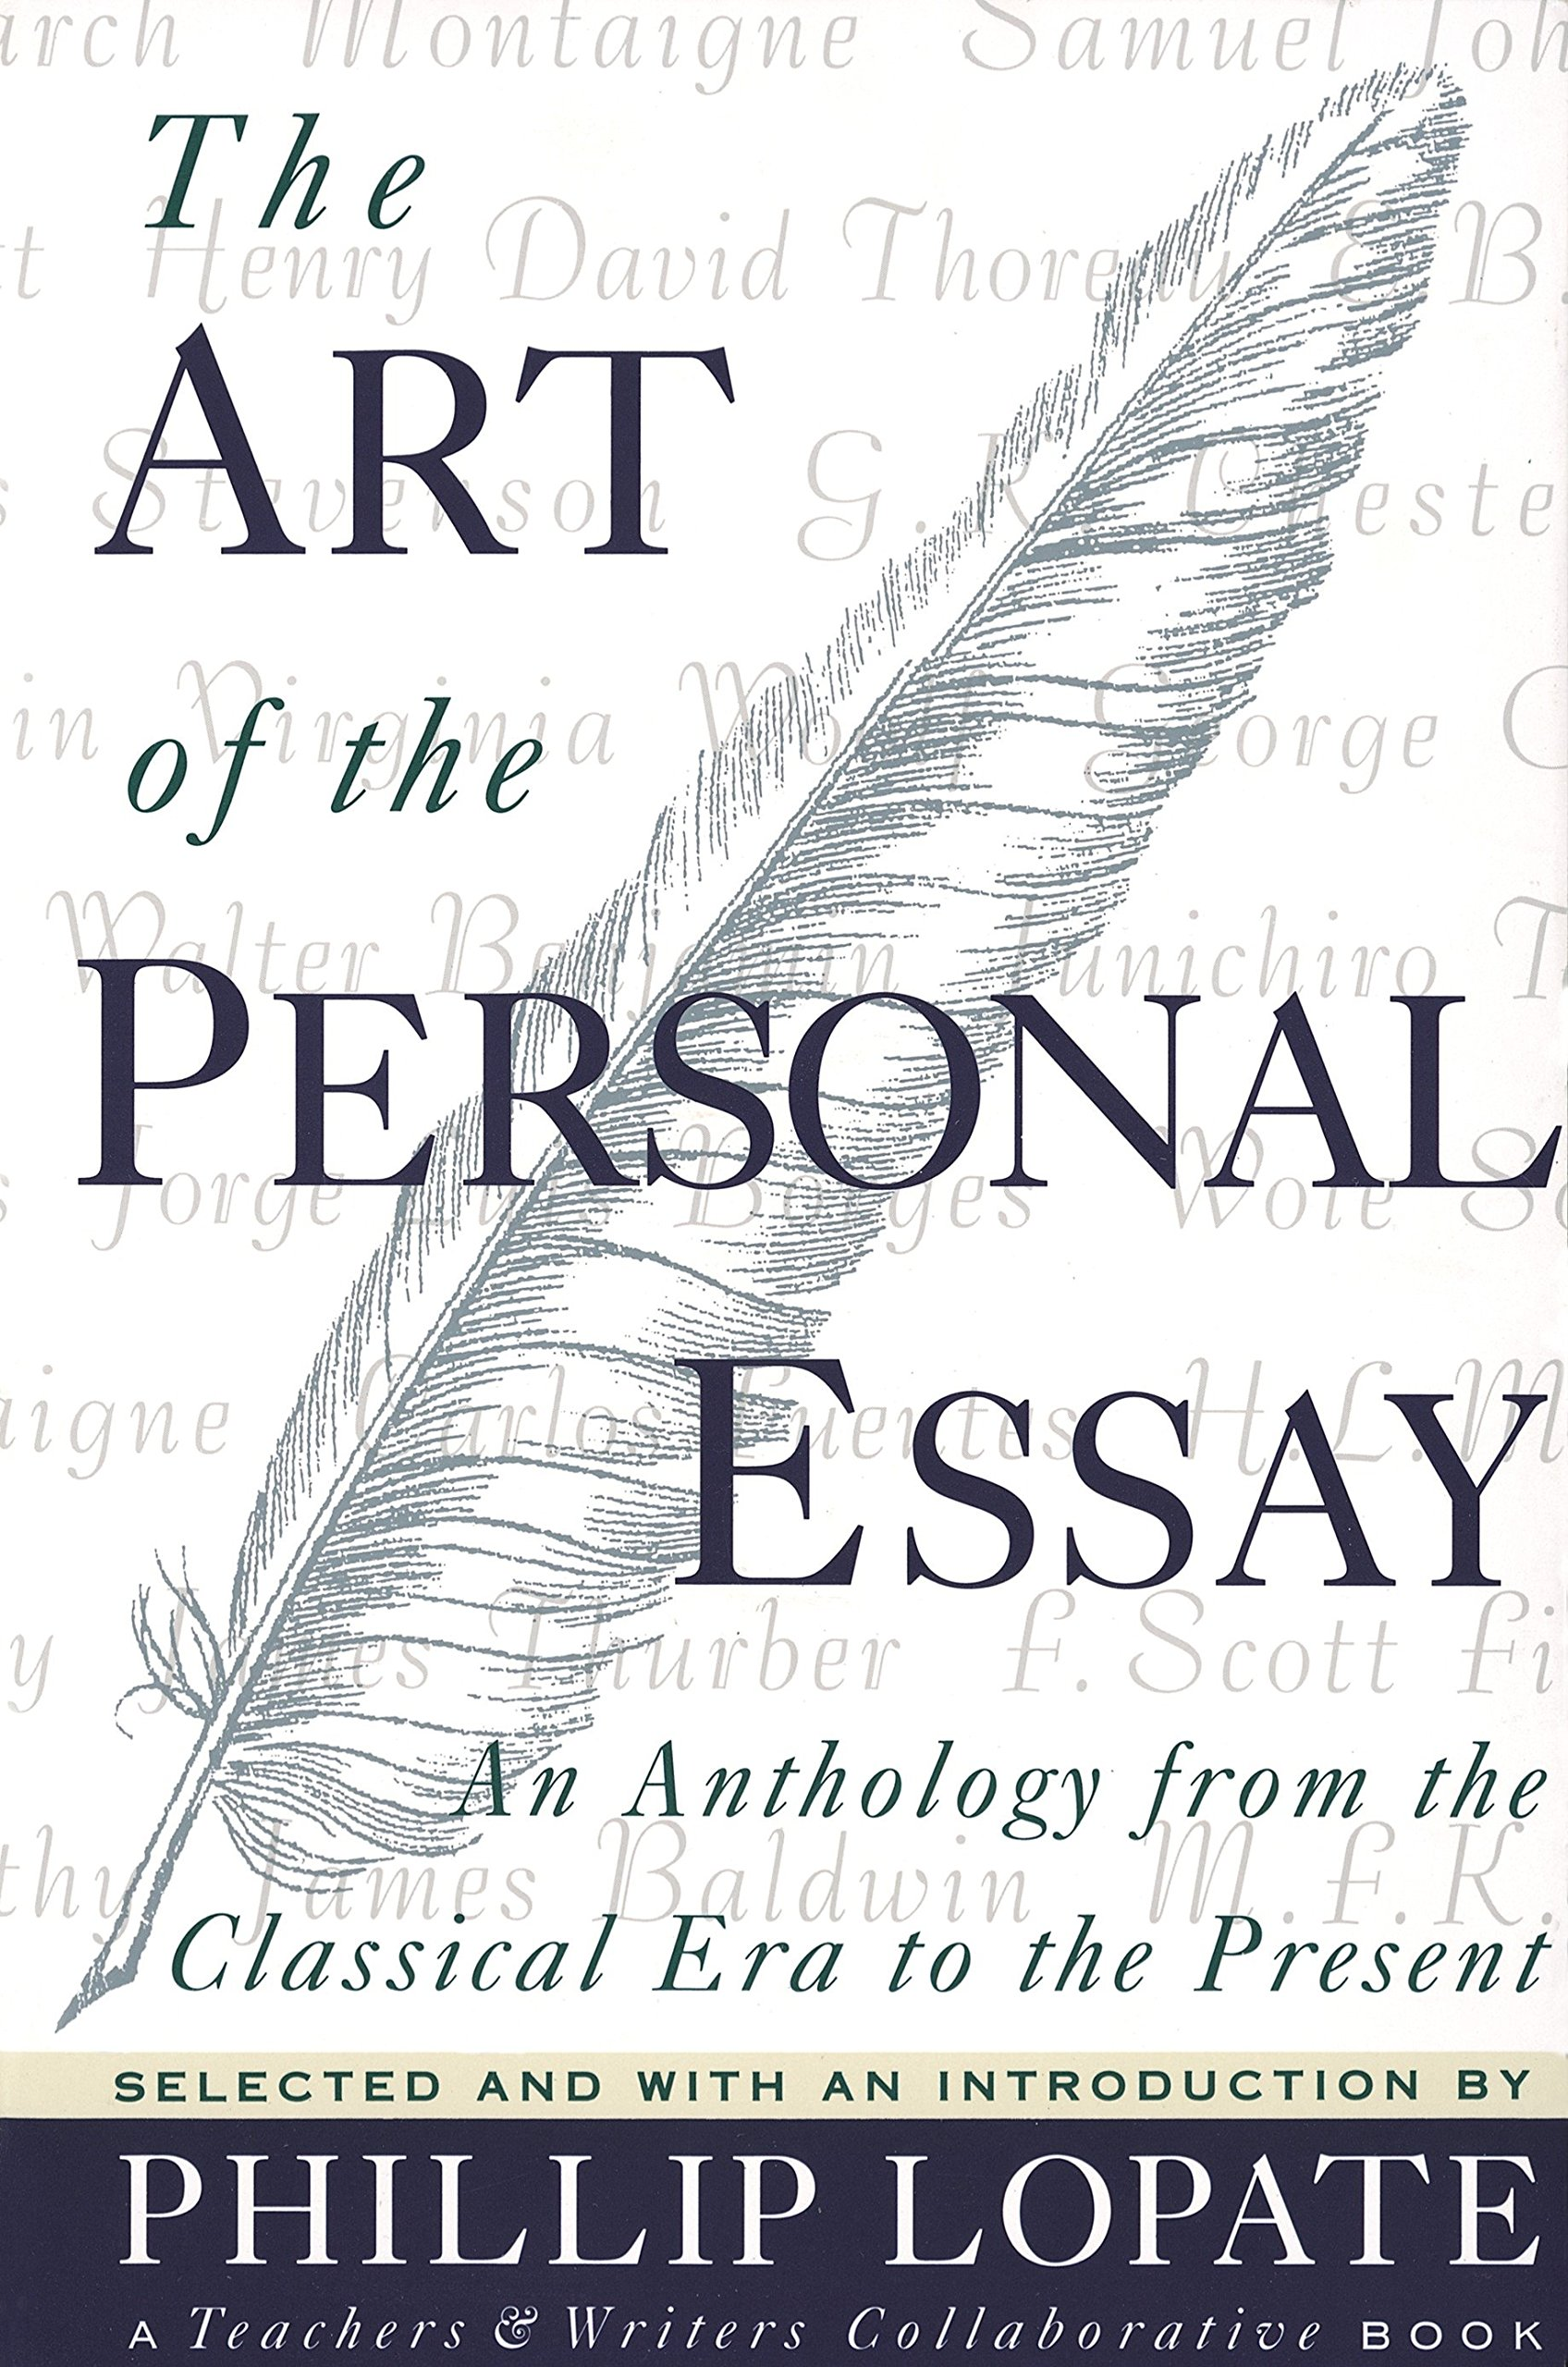 001 91bxbkzxmml The Art Of Personal Essay Beautiful Pdf Download Table Contents Full